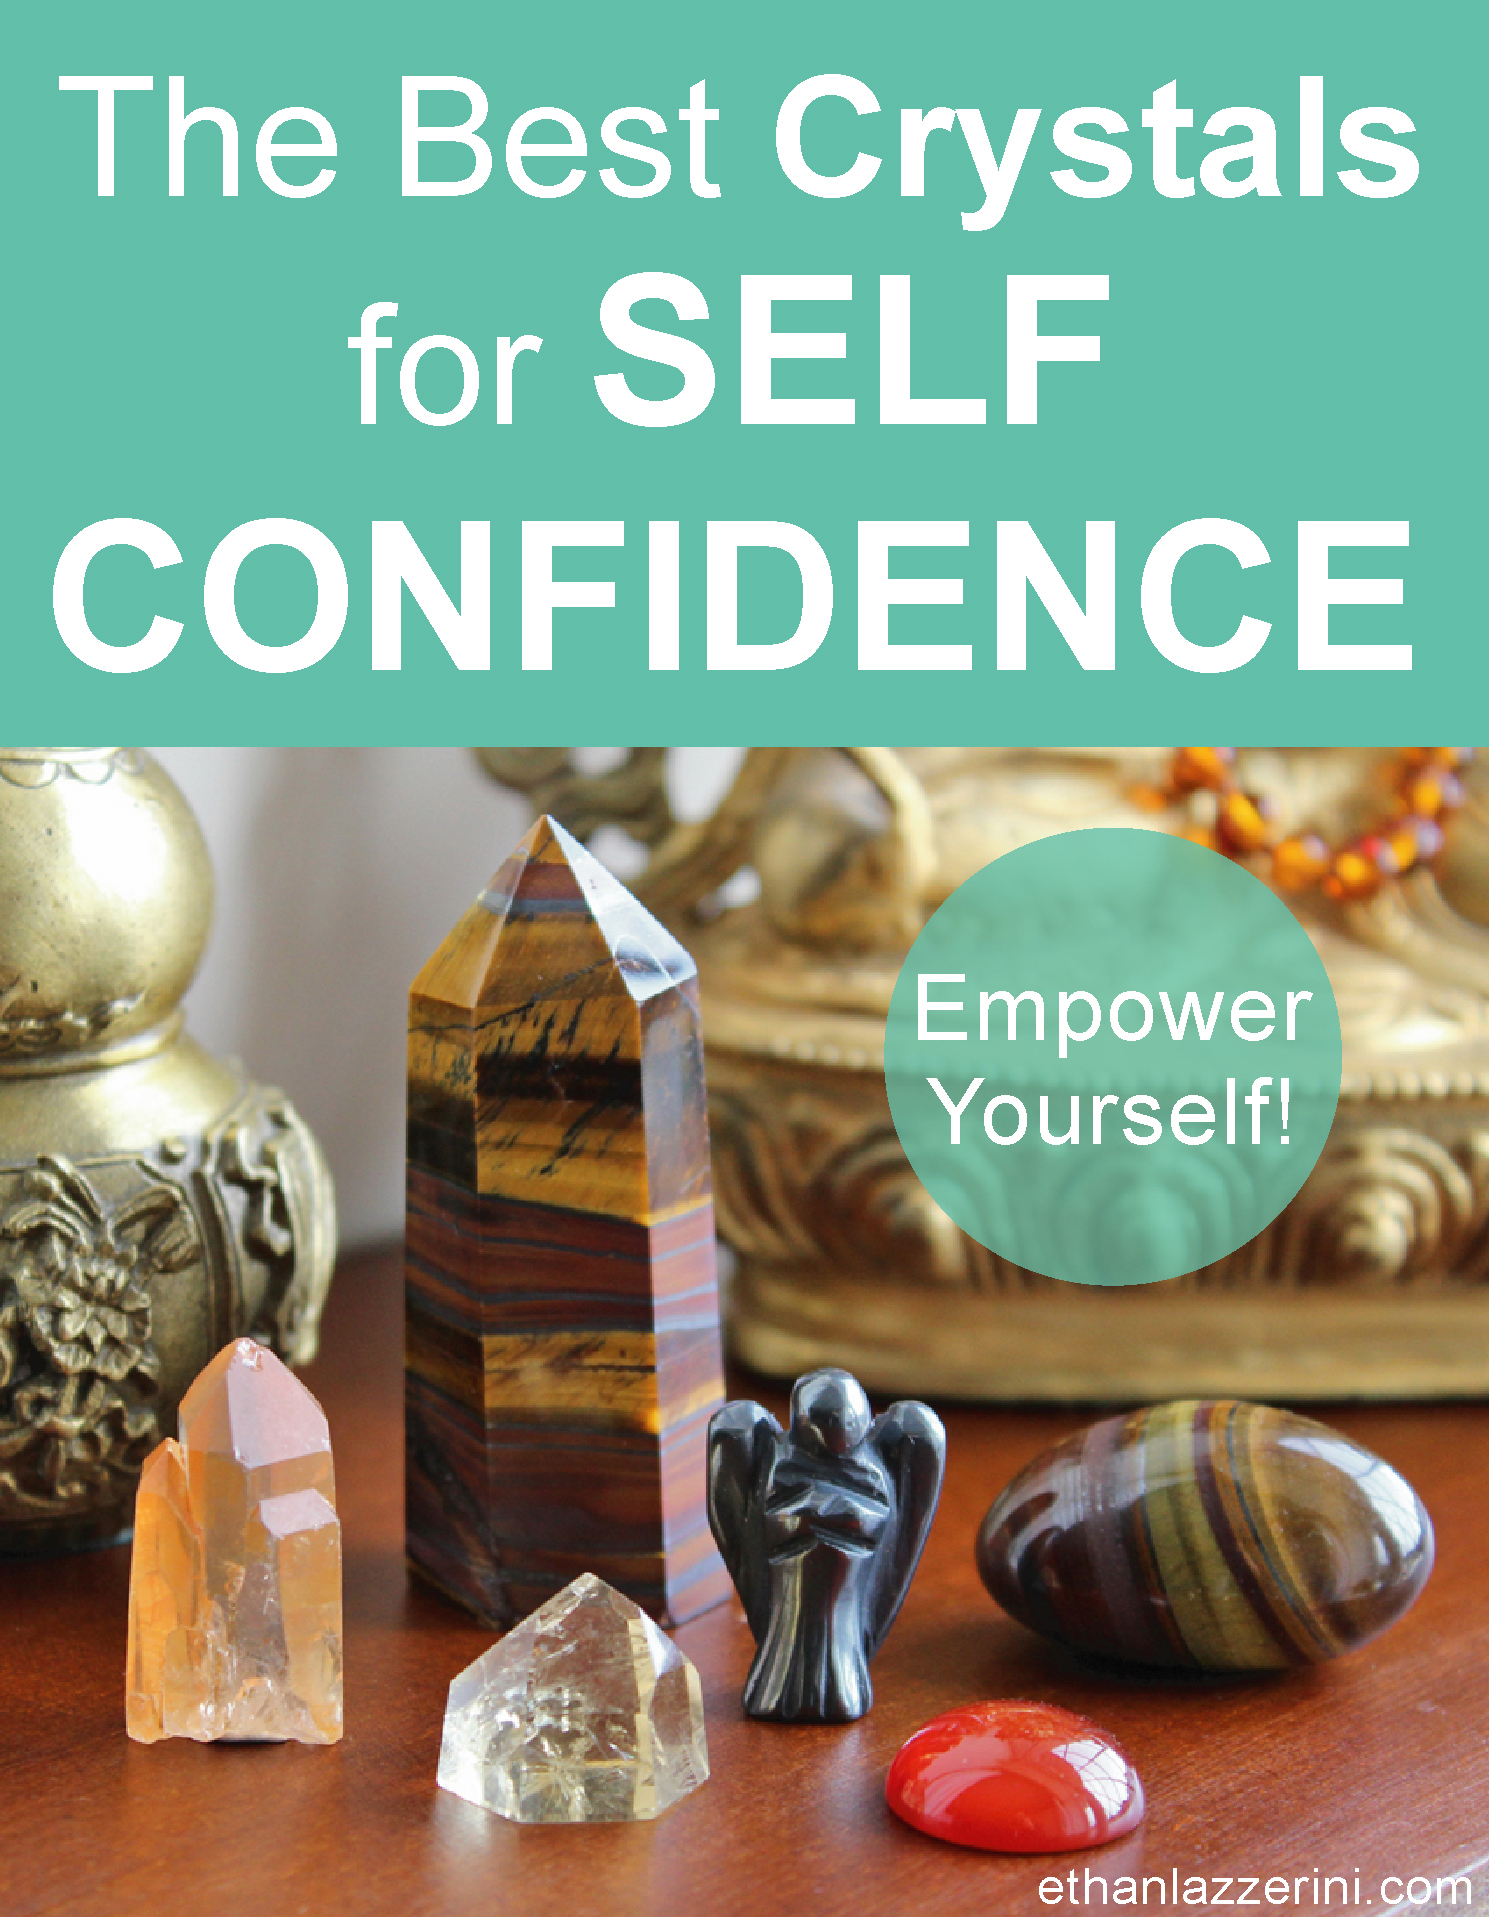 The Best Crystals For Self Confidence. Empower Yourself with these crystals!